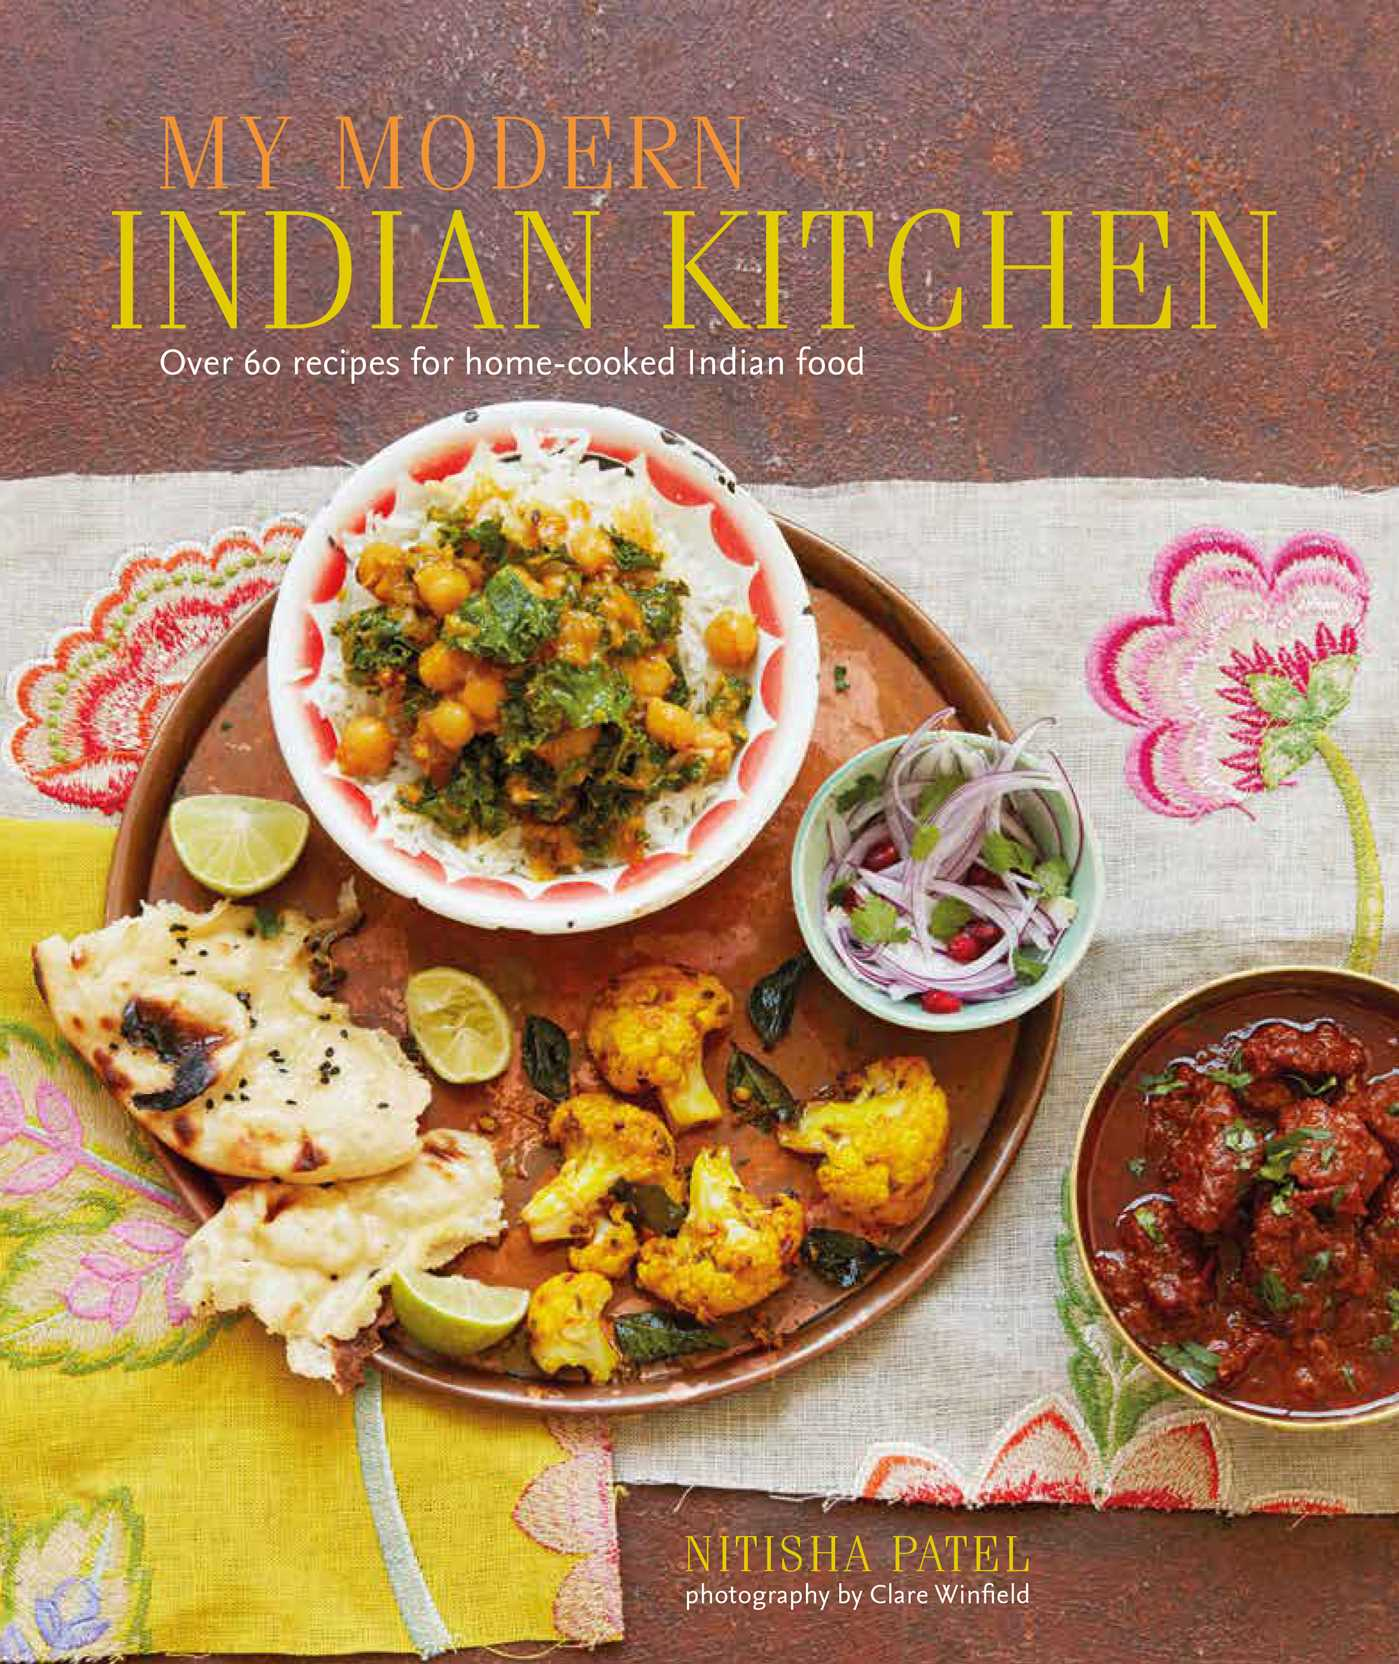 My modern indian kitchen over 60 recipes for home cooked indian my modern indian kitchen over 60 recipes for home cooked indian food walmart forumfinder Choice Image